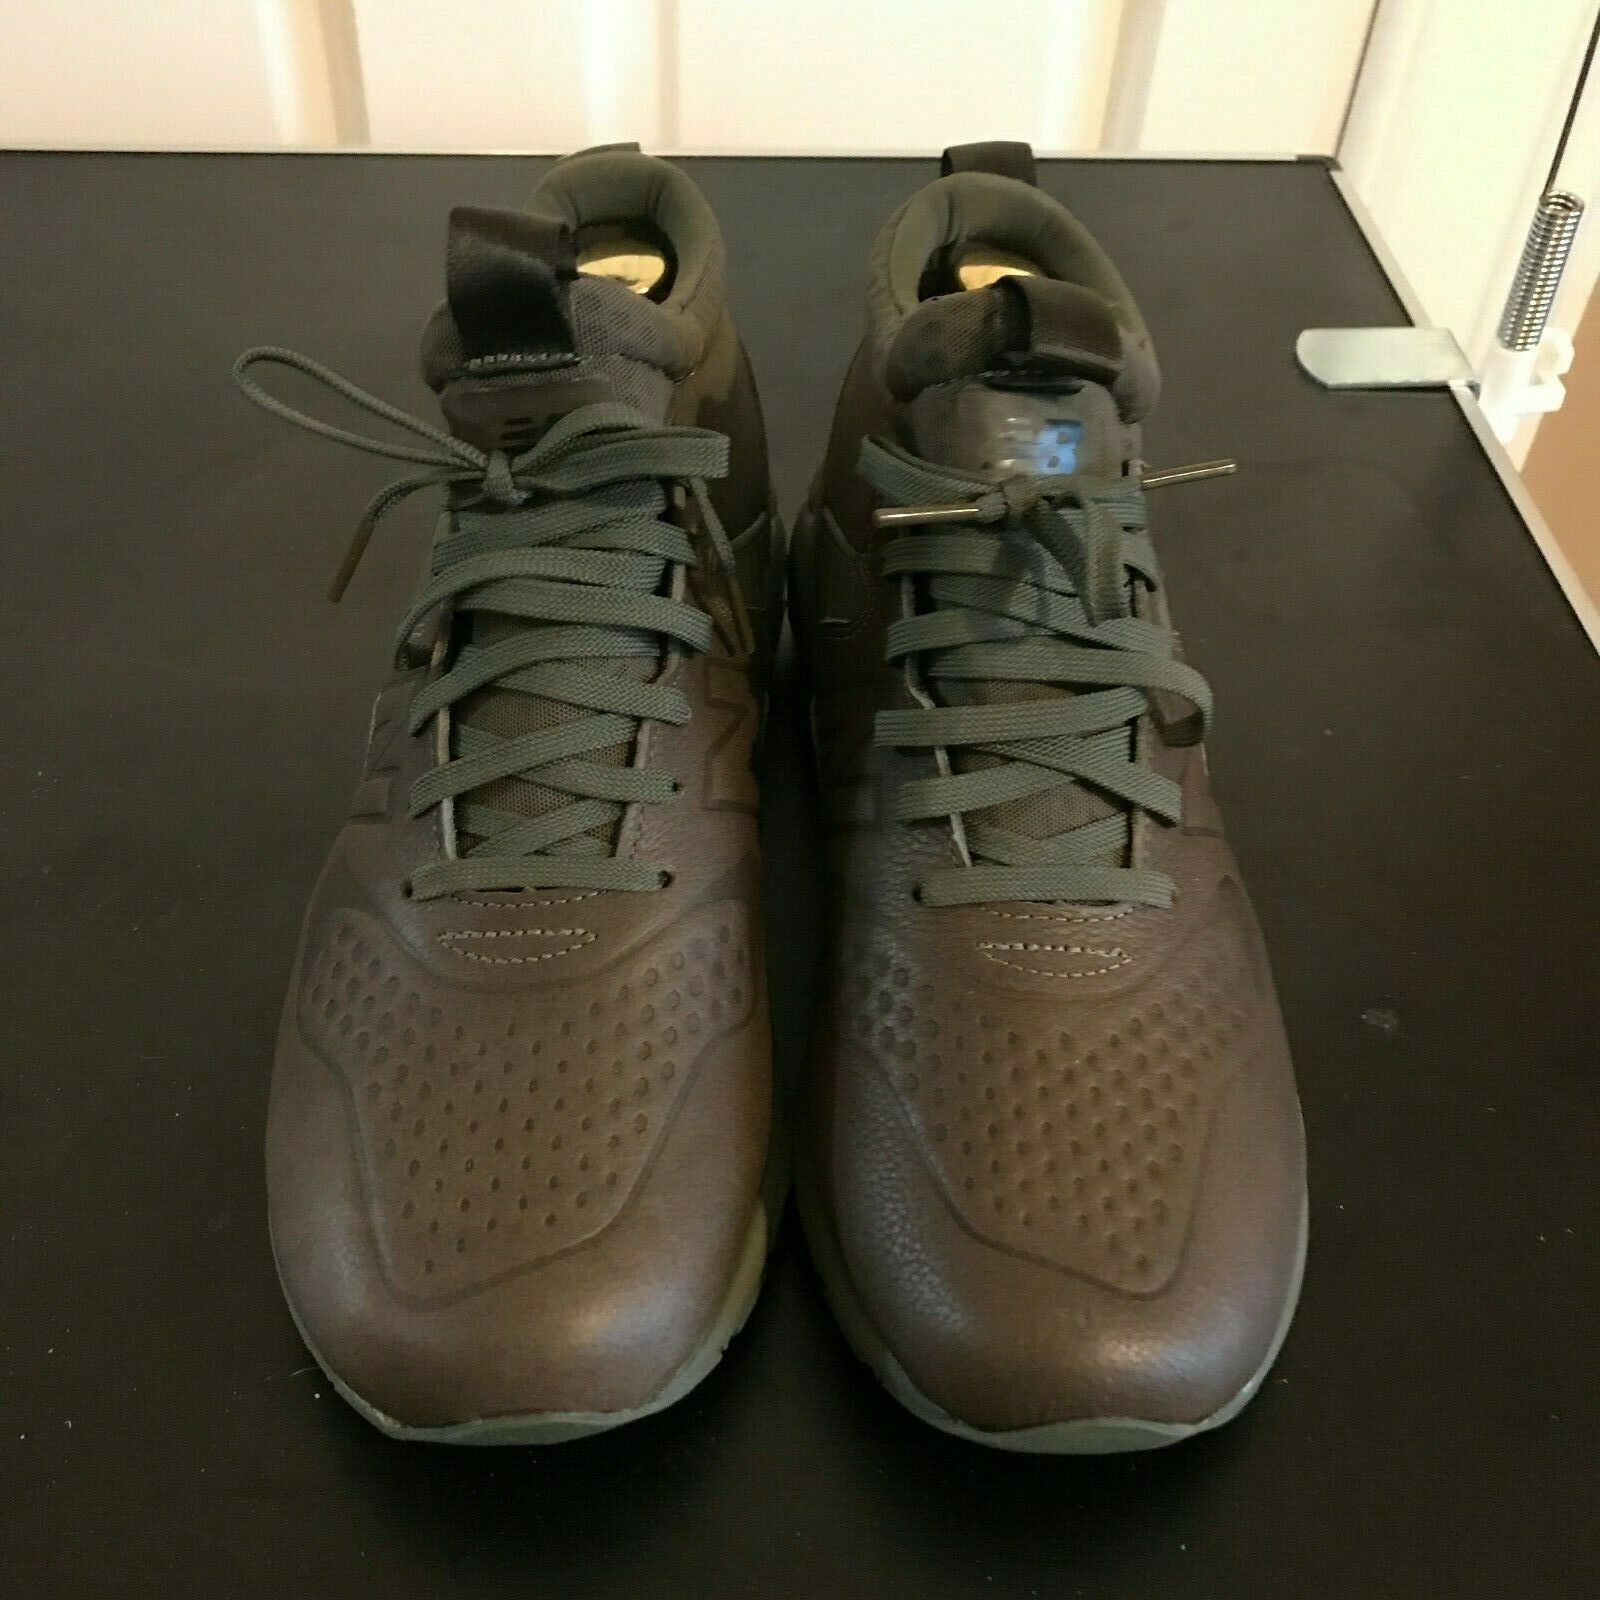 New Balance 580 Deconstructed Mid Olive shoes 41 US NEW Never Used